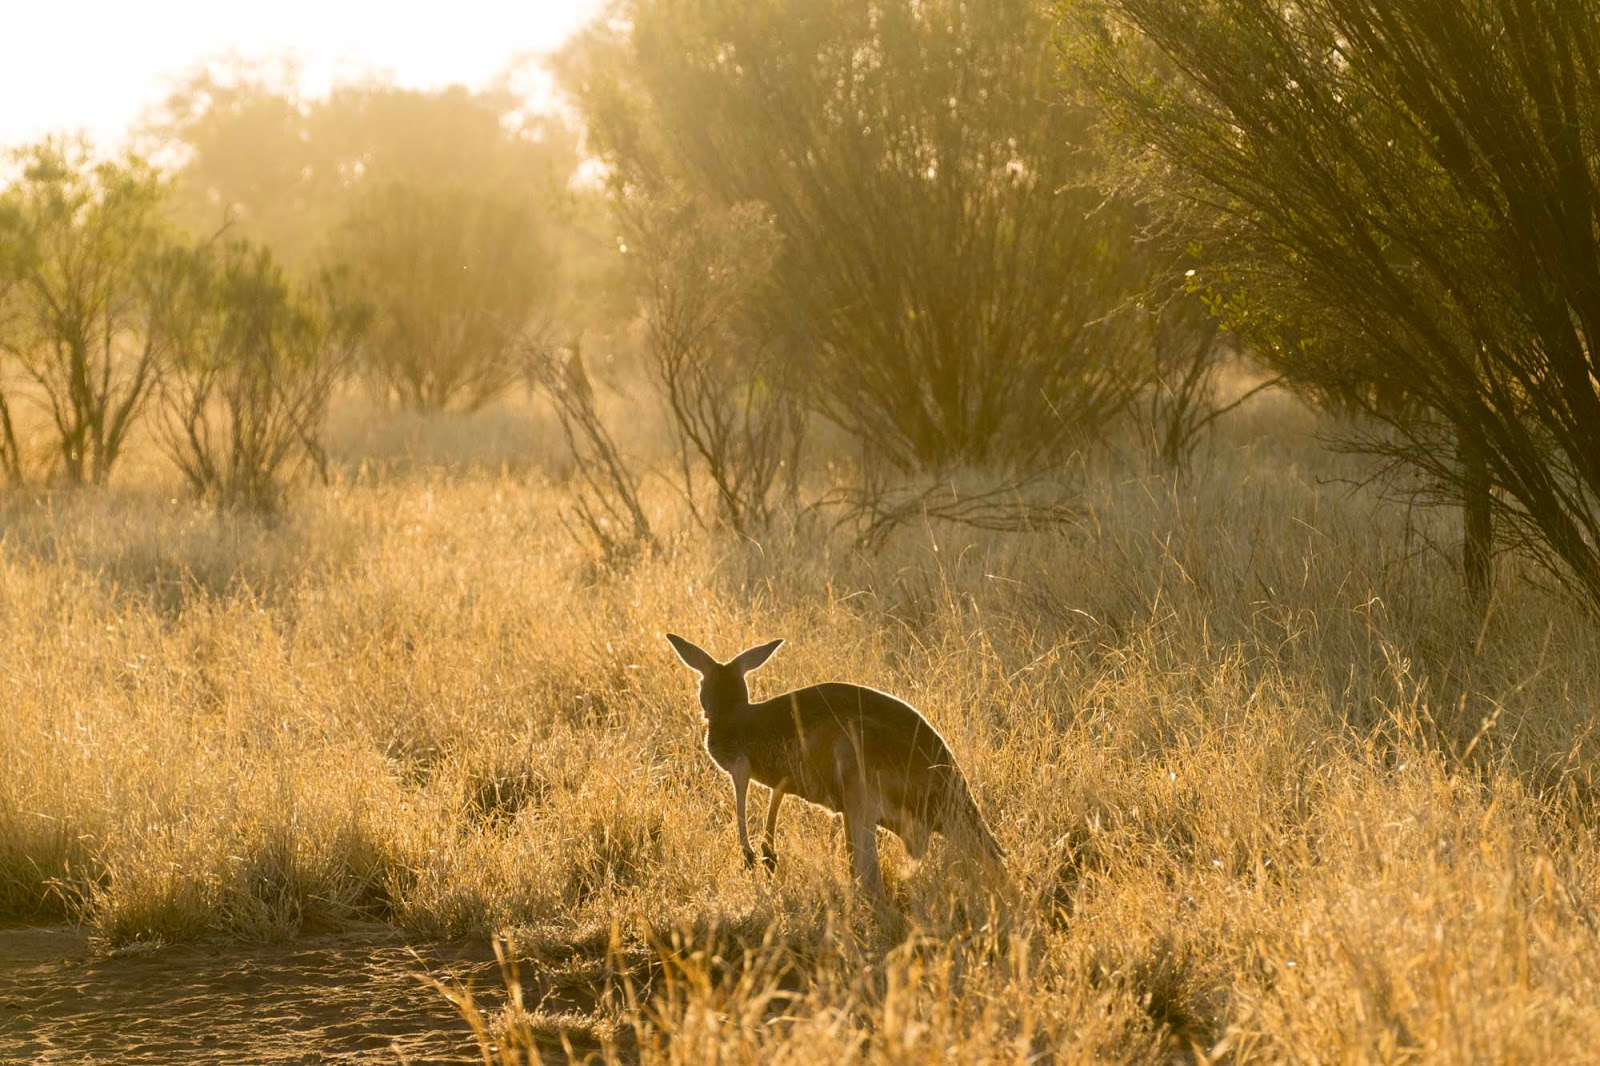 sunset at the kangaroo sanctuary